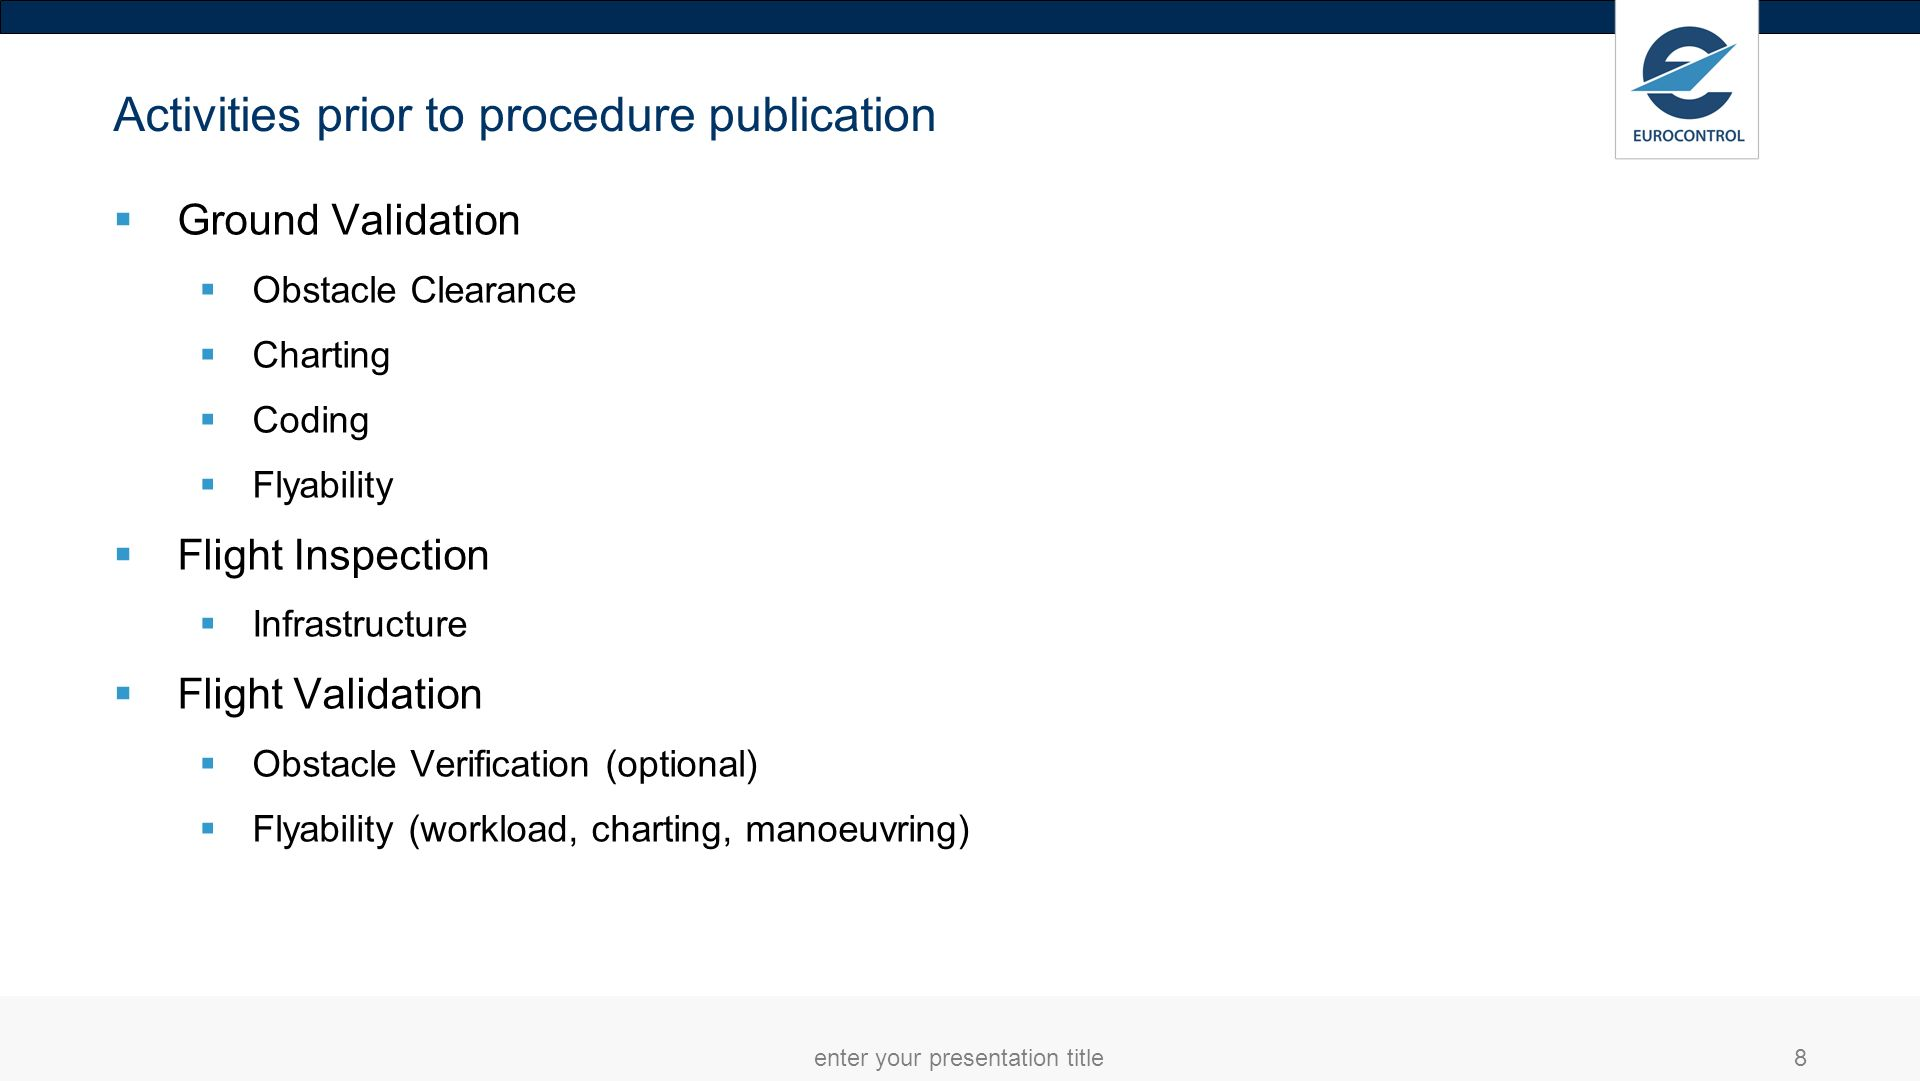 Activities prior to procedure publication